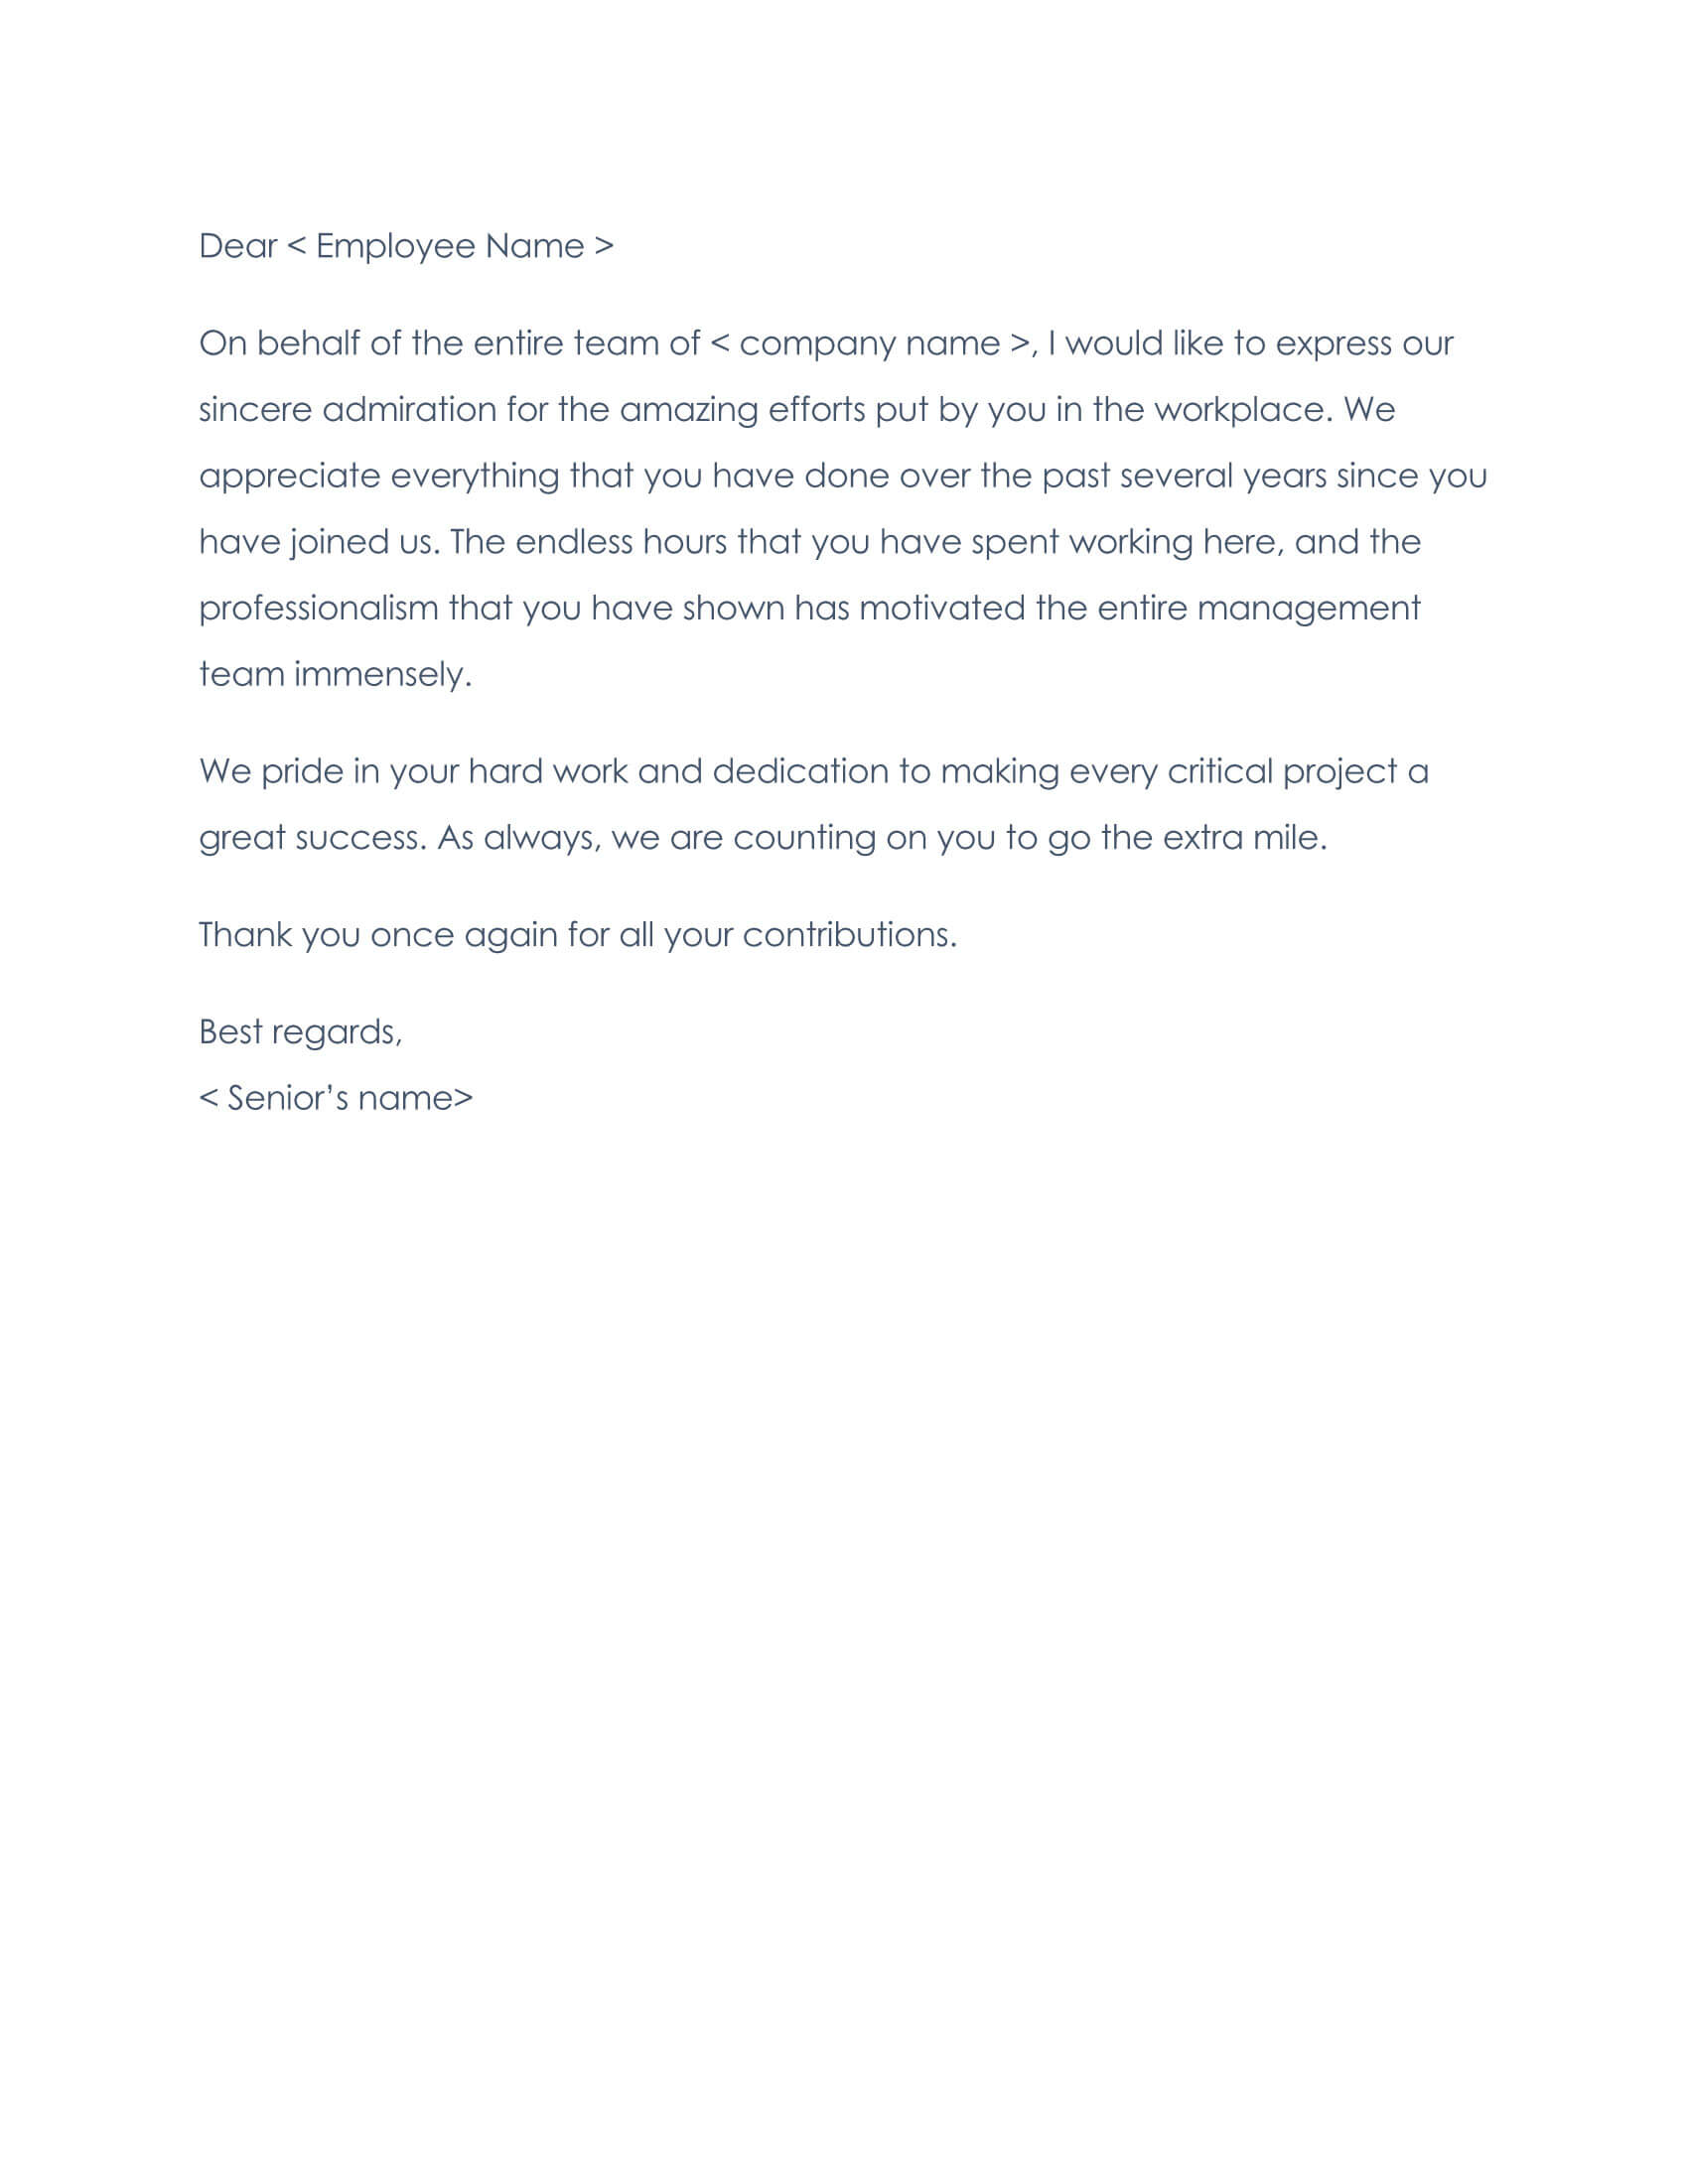 Employee thank you letter 01